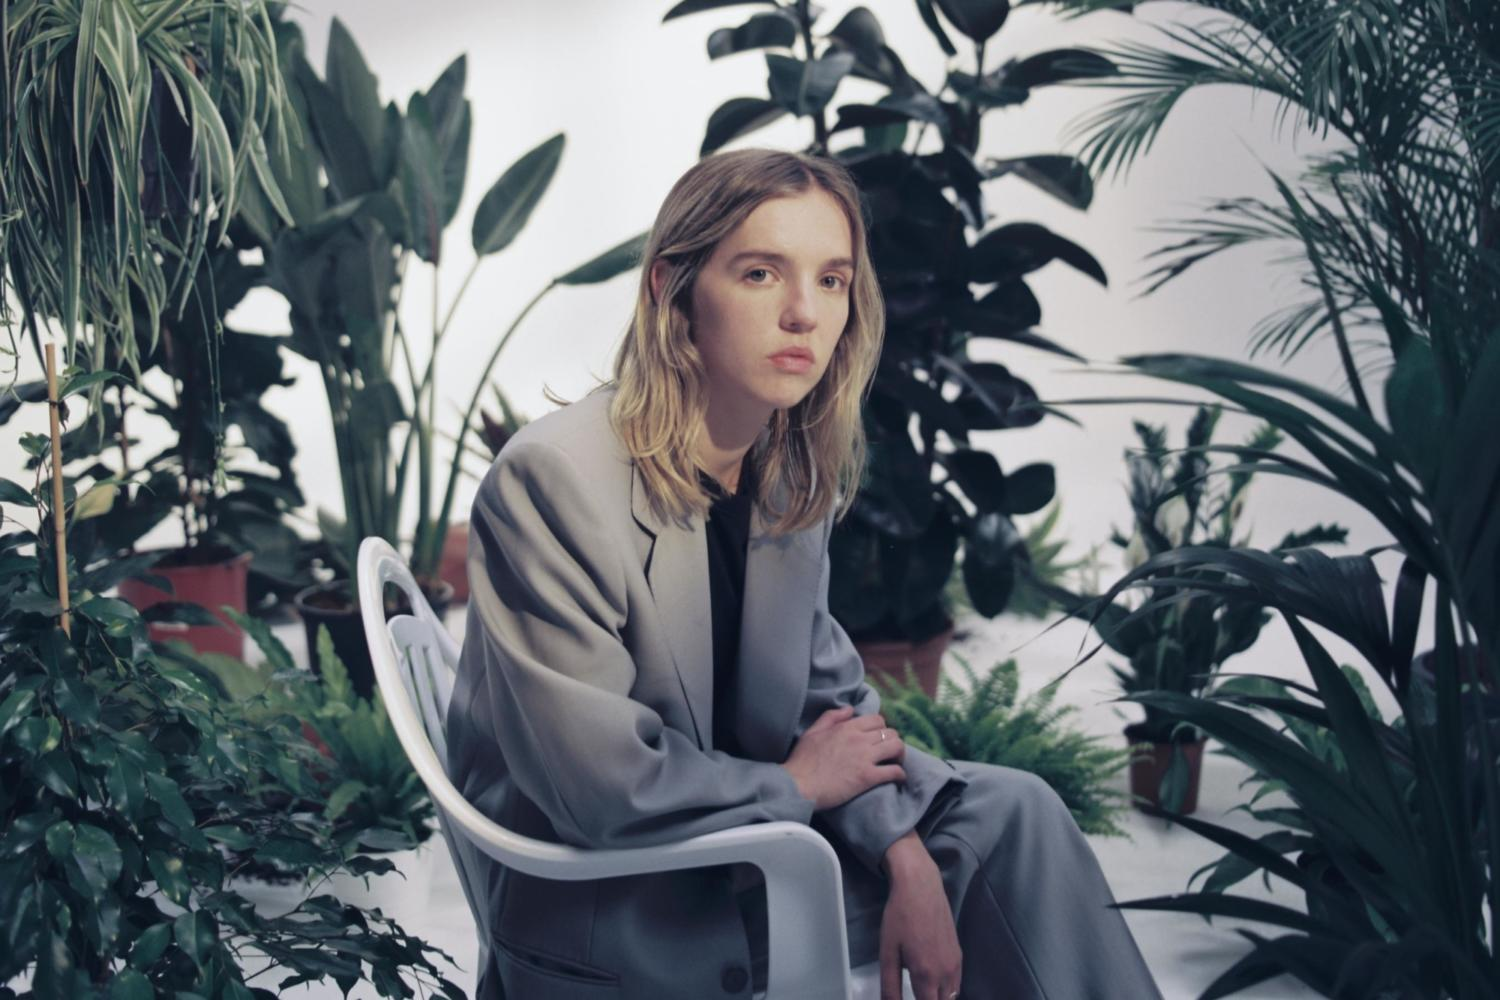 The Japanese House returns with 'Something Has To Change'